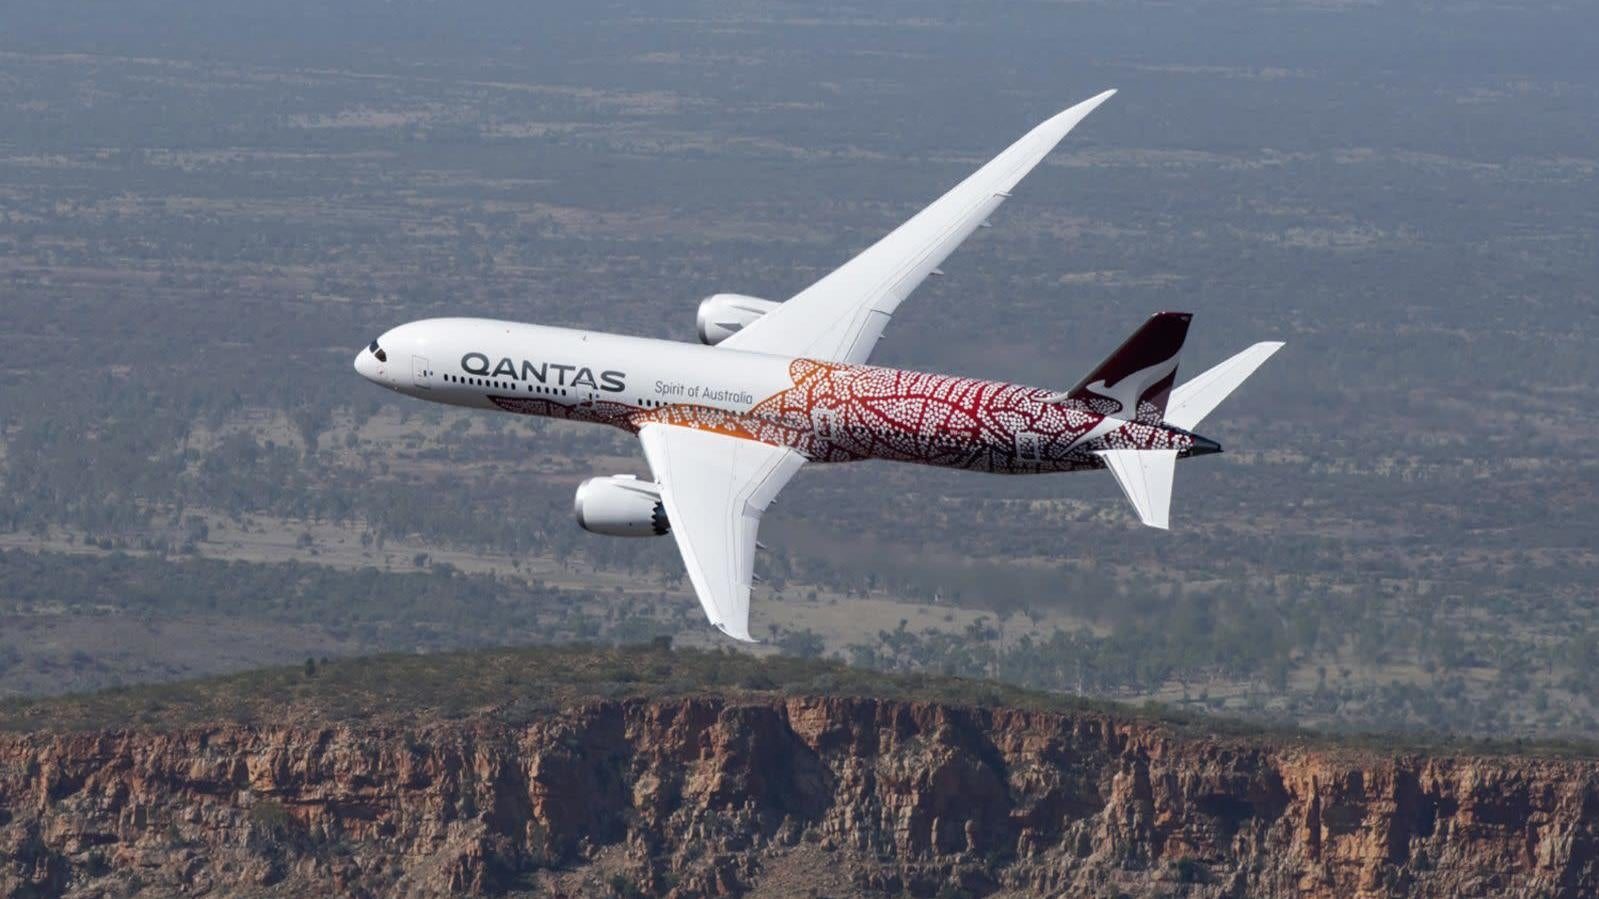 The World's Longest Qantas Flight Sounds Absolutely Terrible